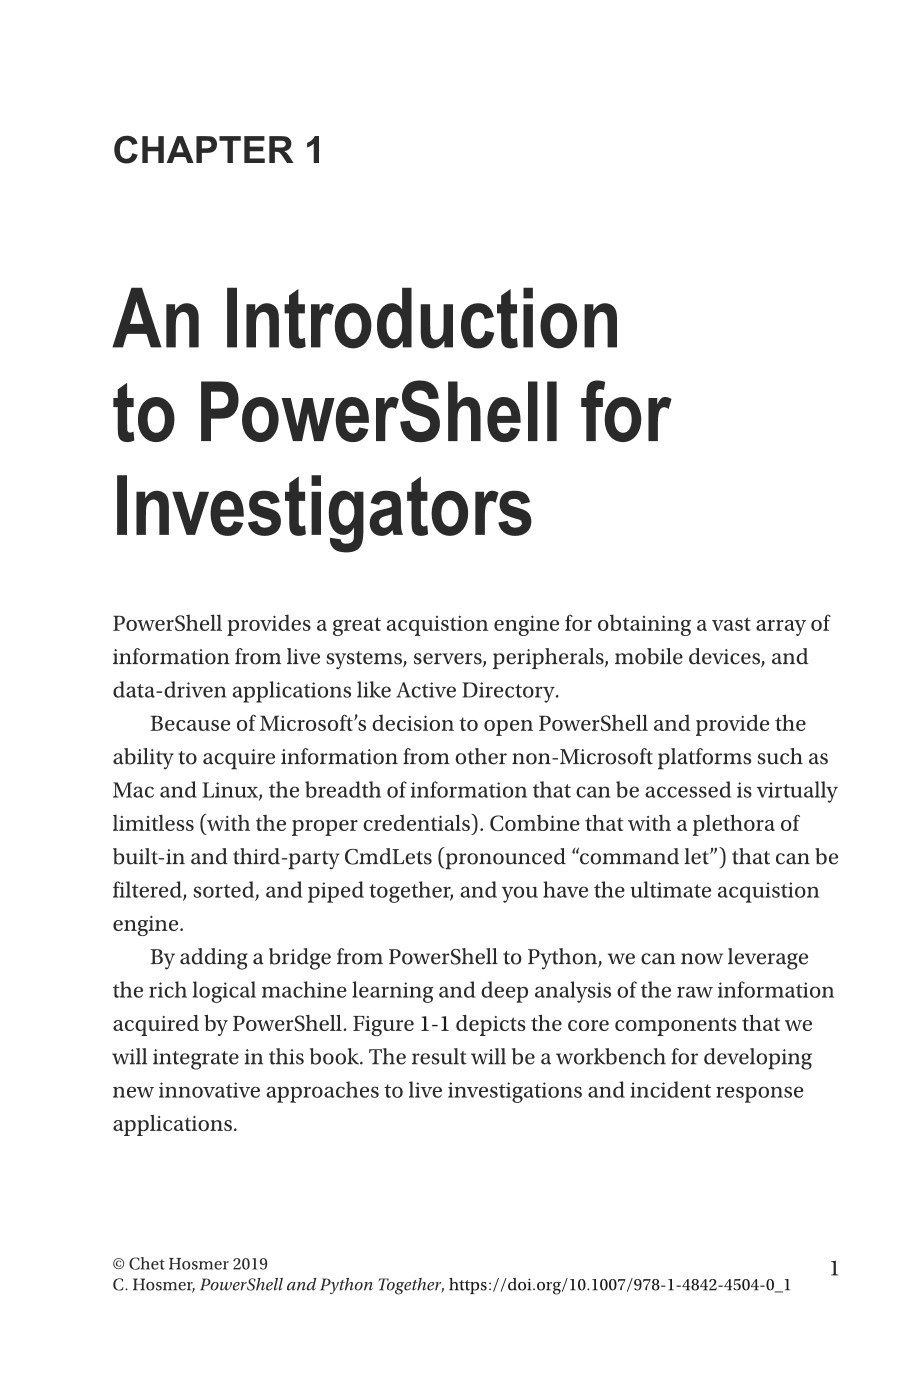 PowerShell and Python Together: Targeting Digital Investigations-preview-1